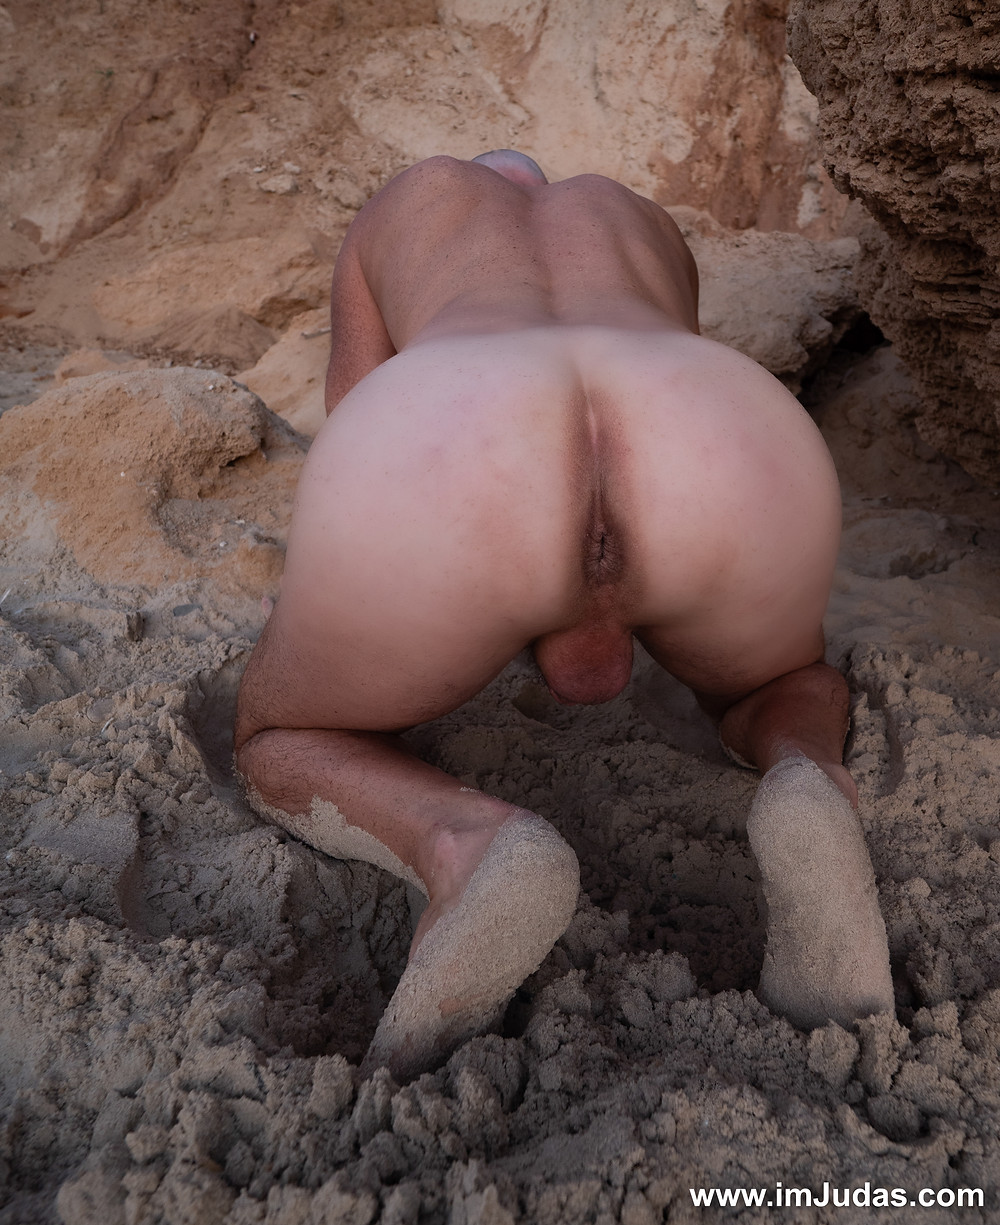 anus hole ass naked beach male man model